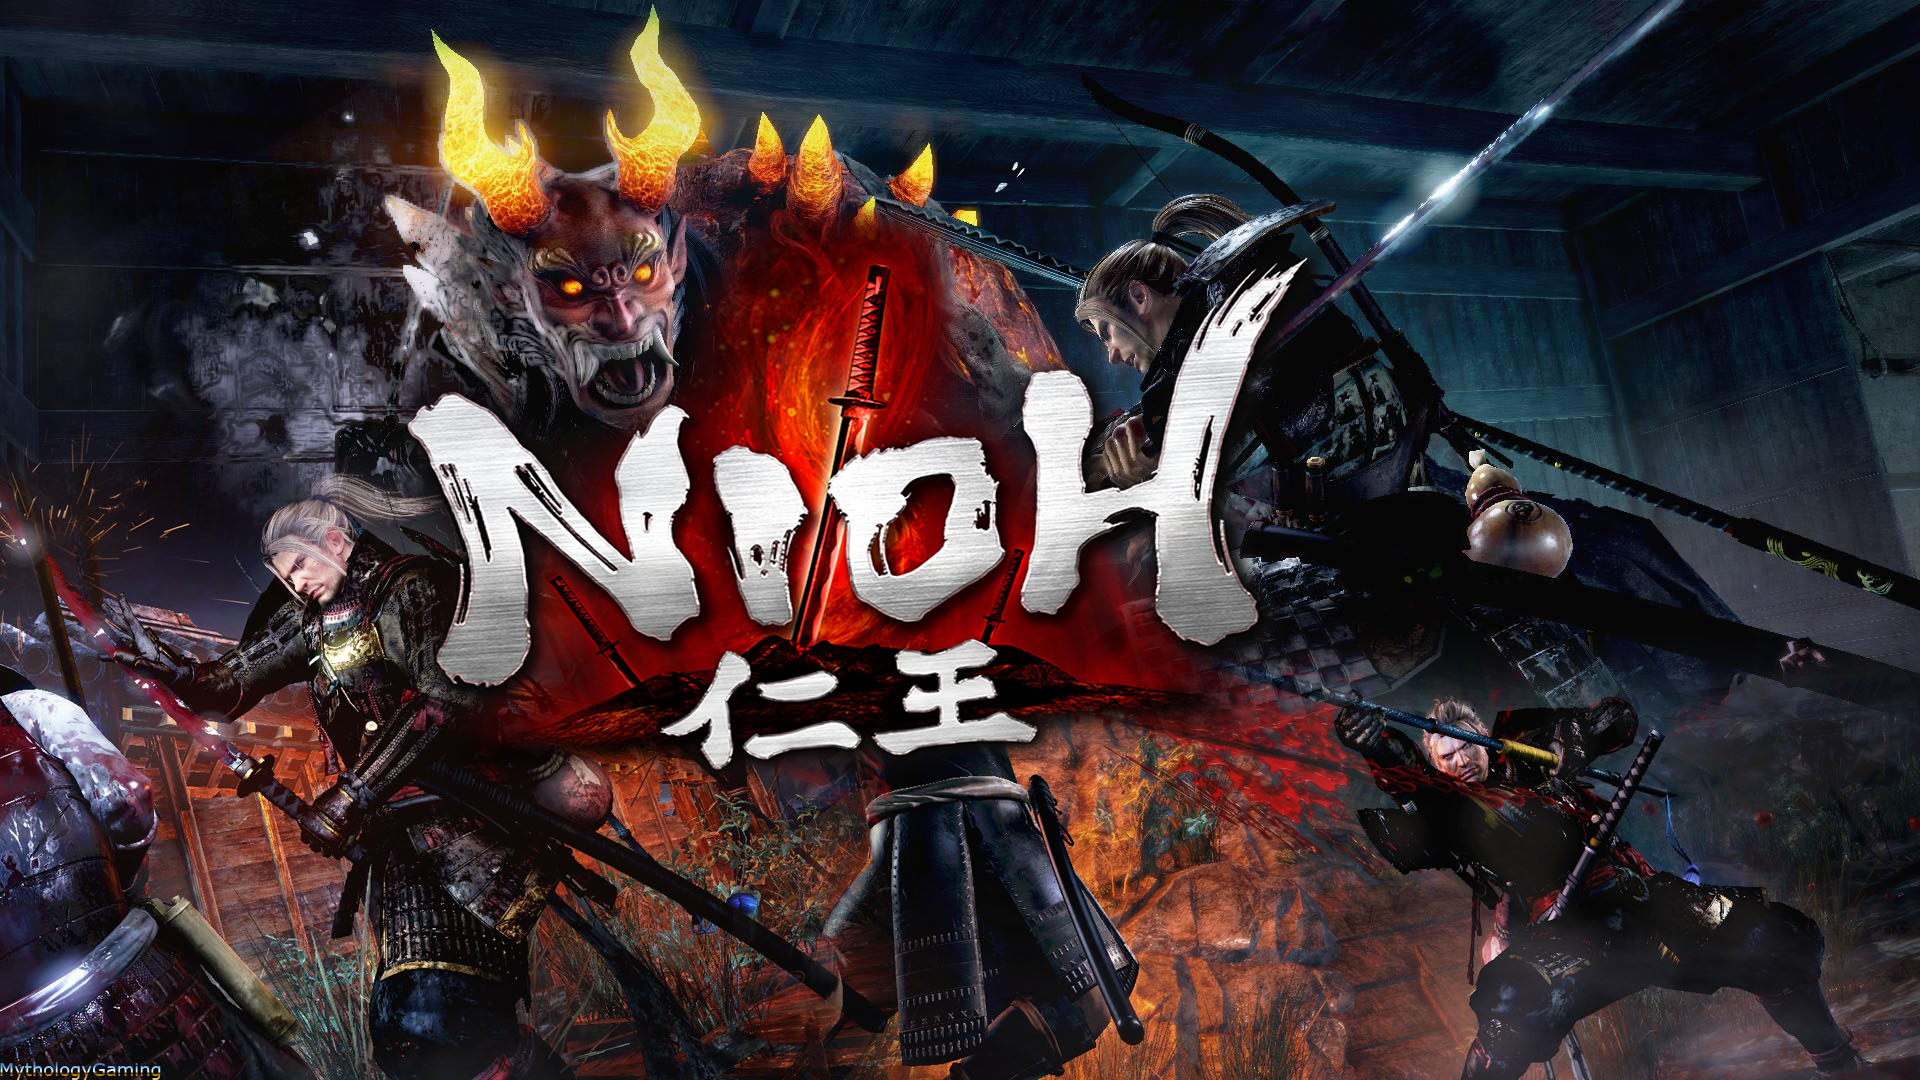 Nioh is one of the most anticipated among PS4 games release list